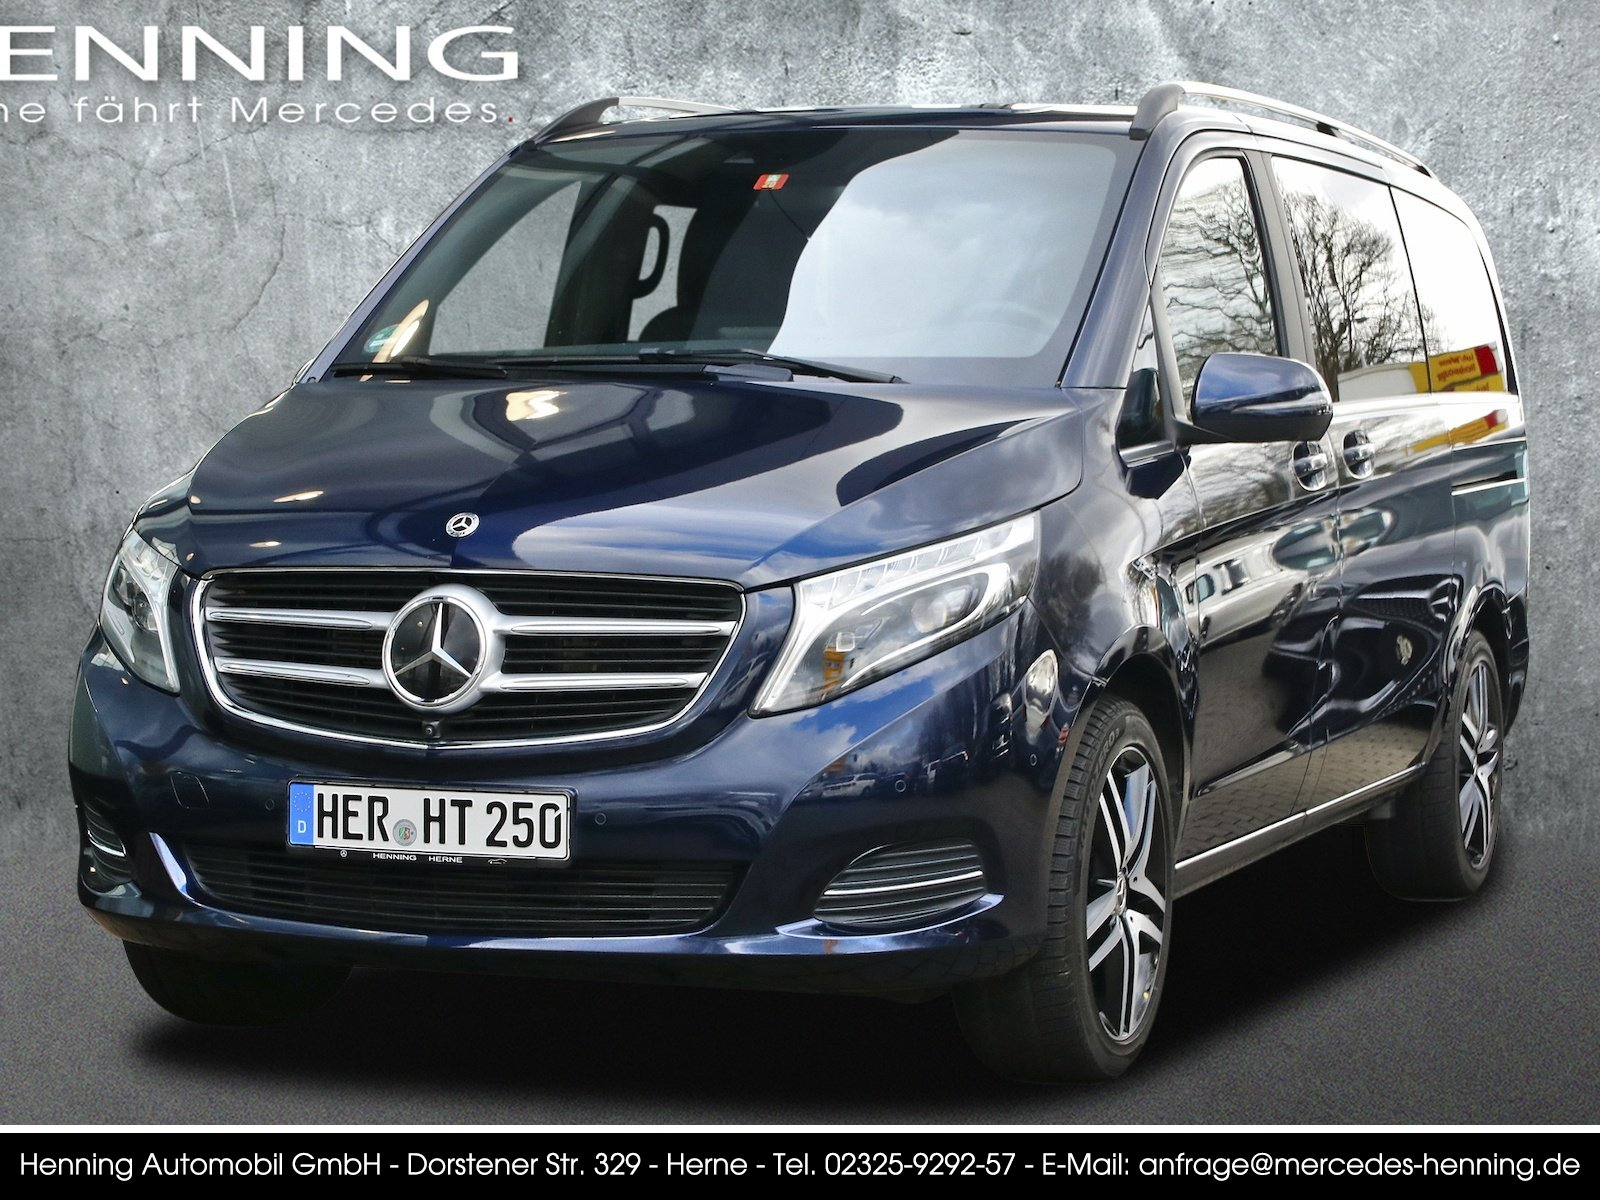 MERCEDES-BENZ 250 V d AVANTGARDE EDITION Lang 4MATIC Blau